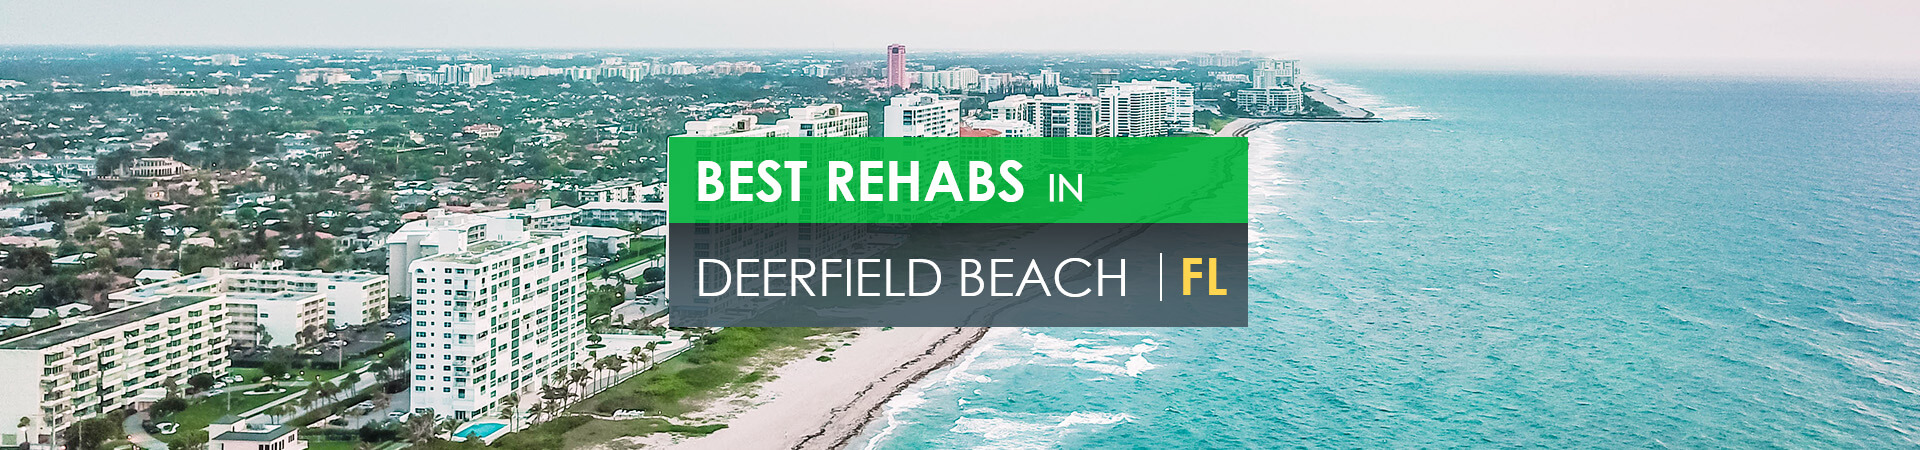 Best rehabs in Deerfield Beach, Fl